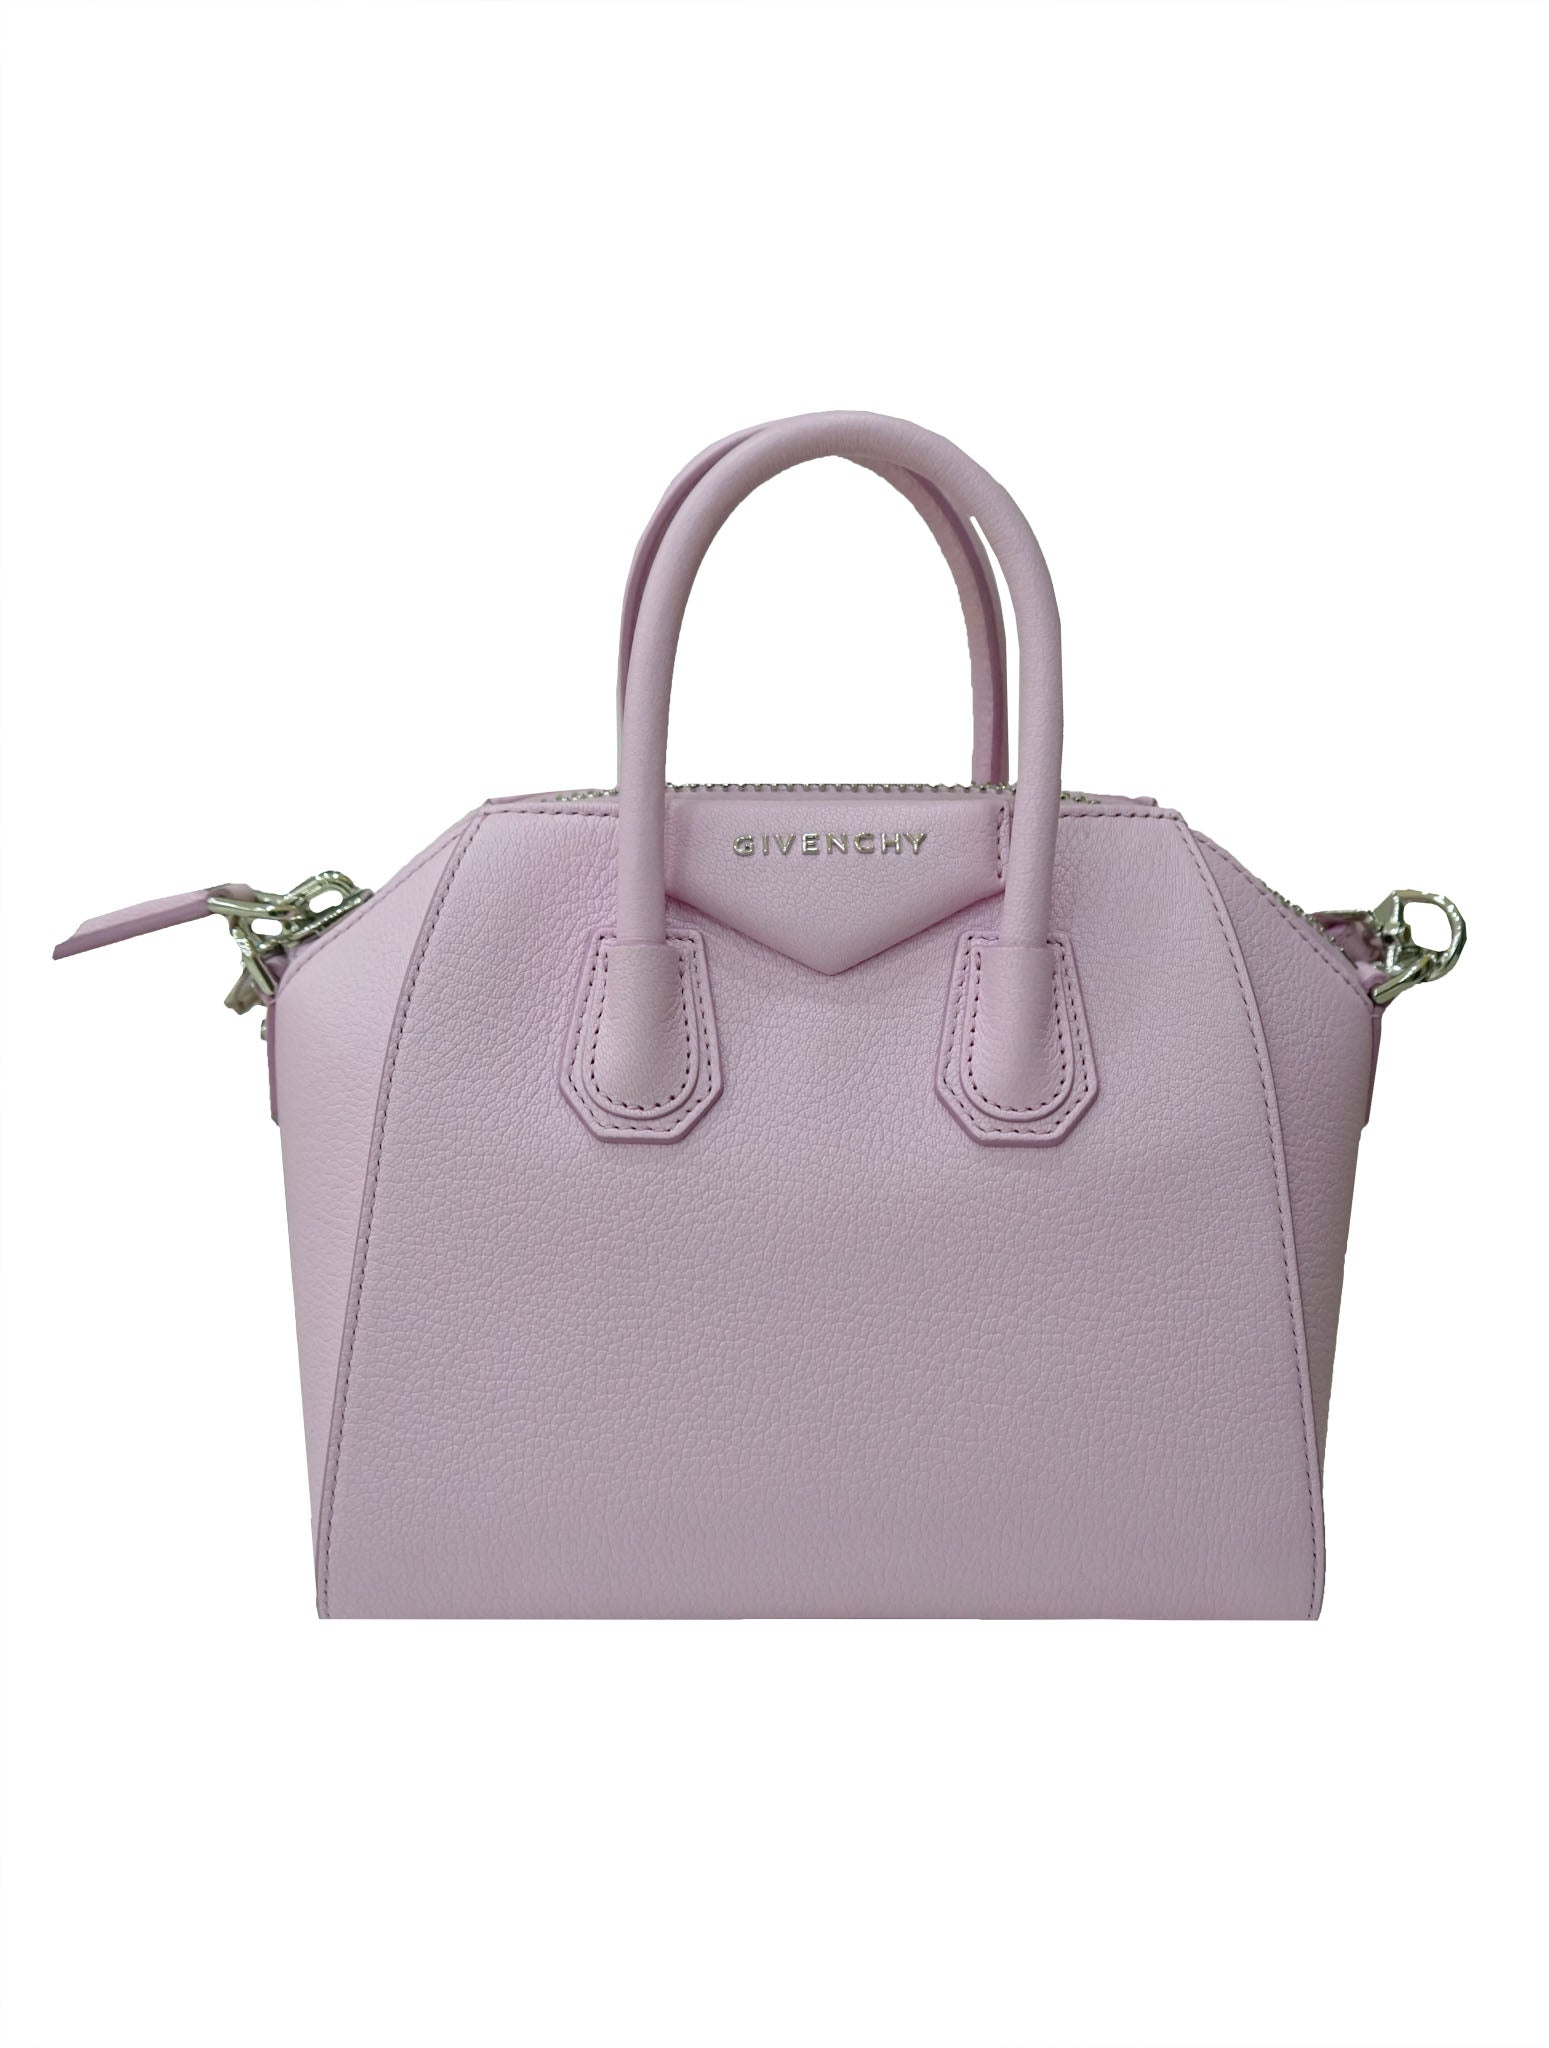 MINI ANTIGONA SATCHEL BAG - kidsstyleforless